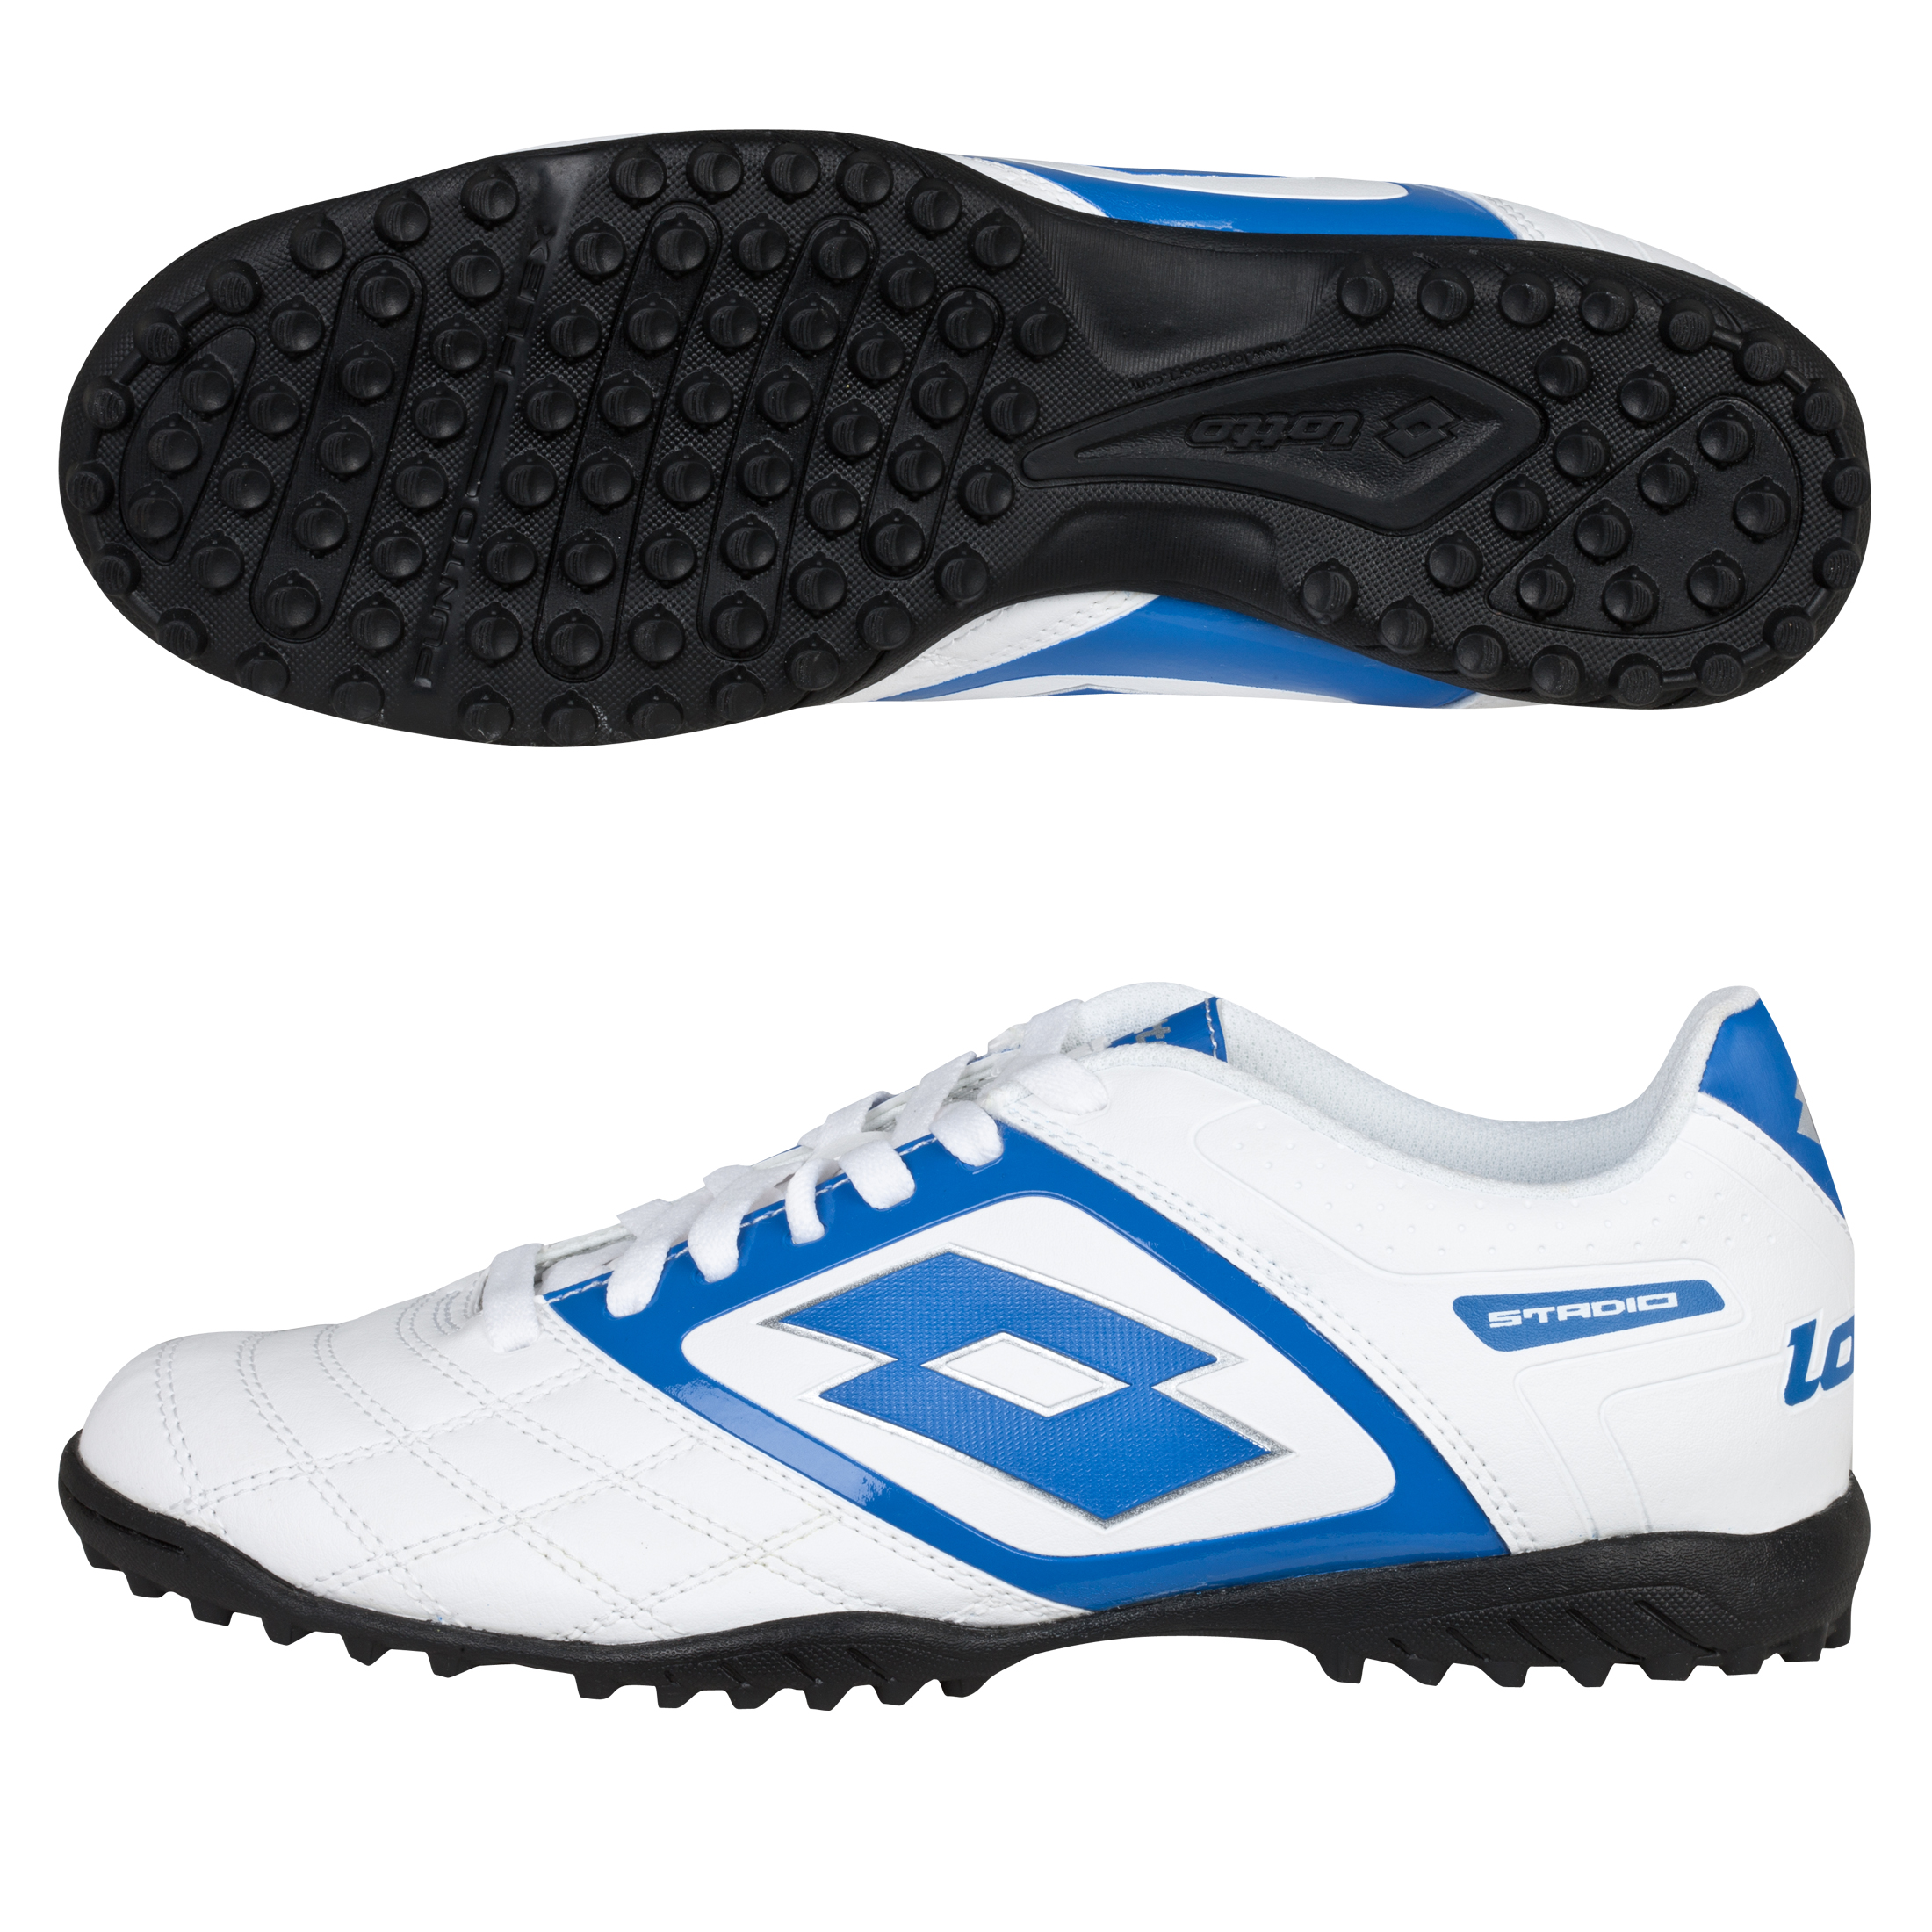 Lotto Stadio Potenza II 700 Astro Turf Trainers - White/Blue